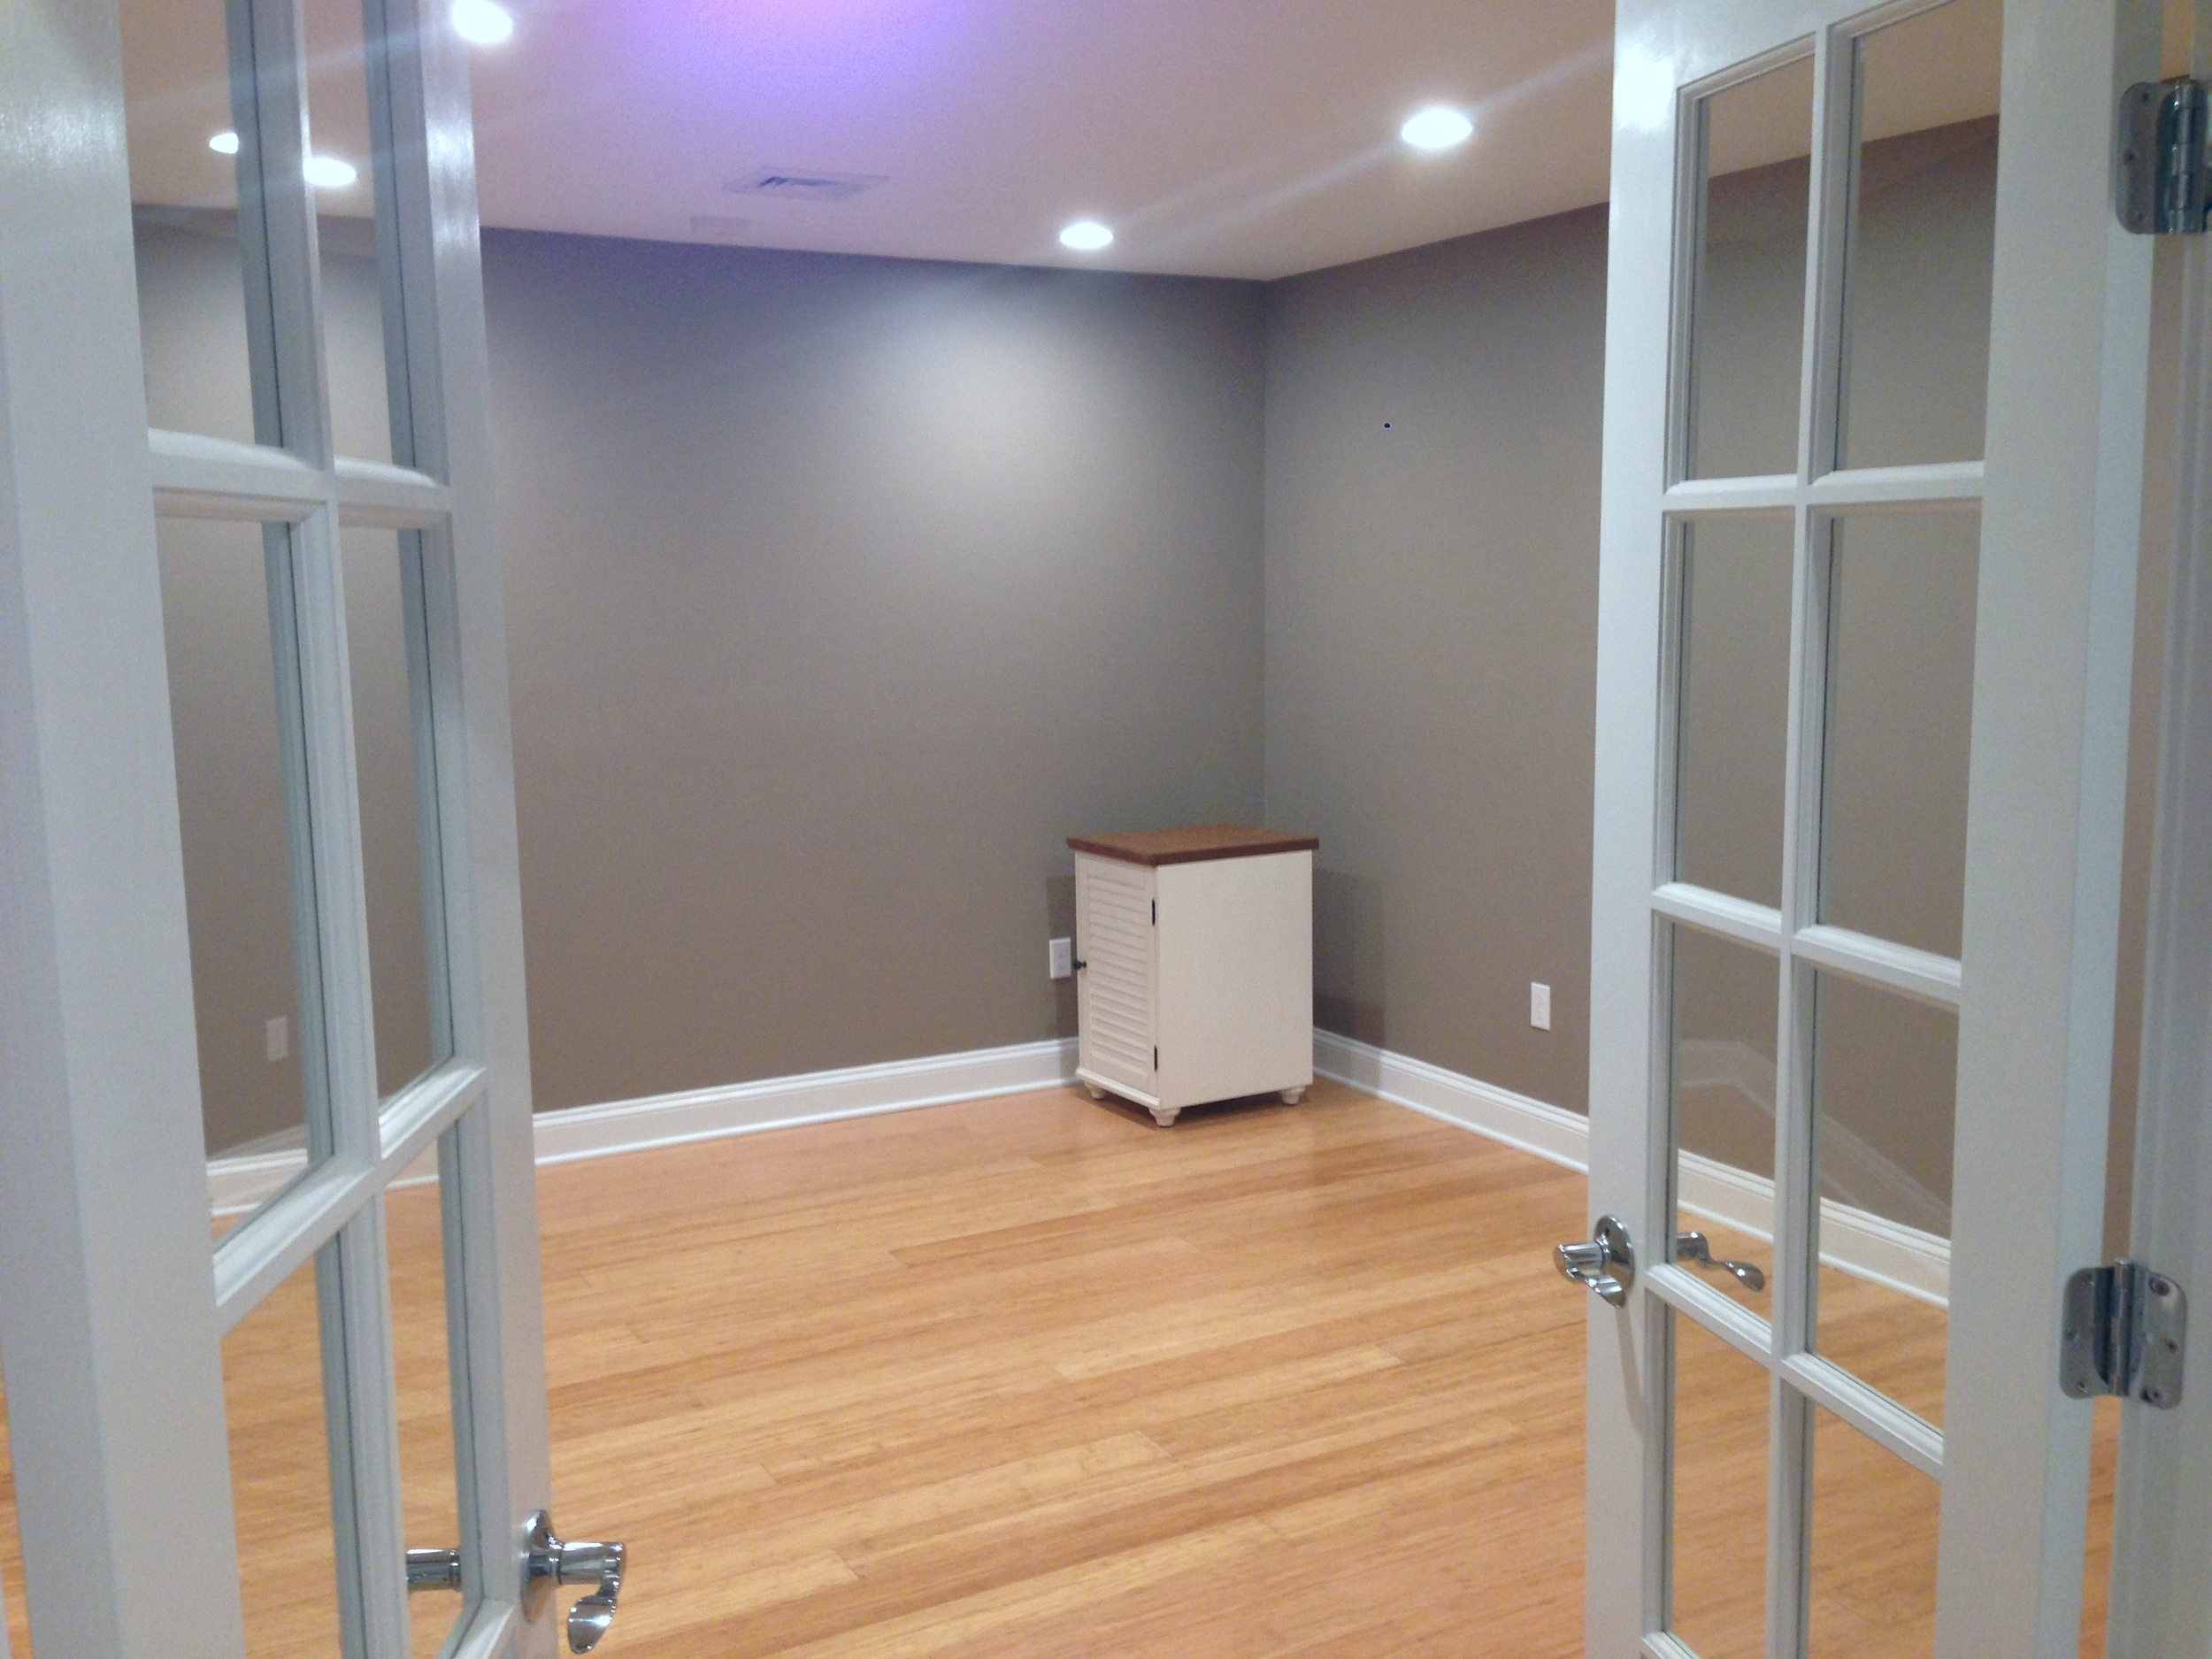 Basement Finish Remodel in East Lyme CT | Shaw Remodeling